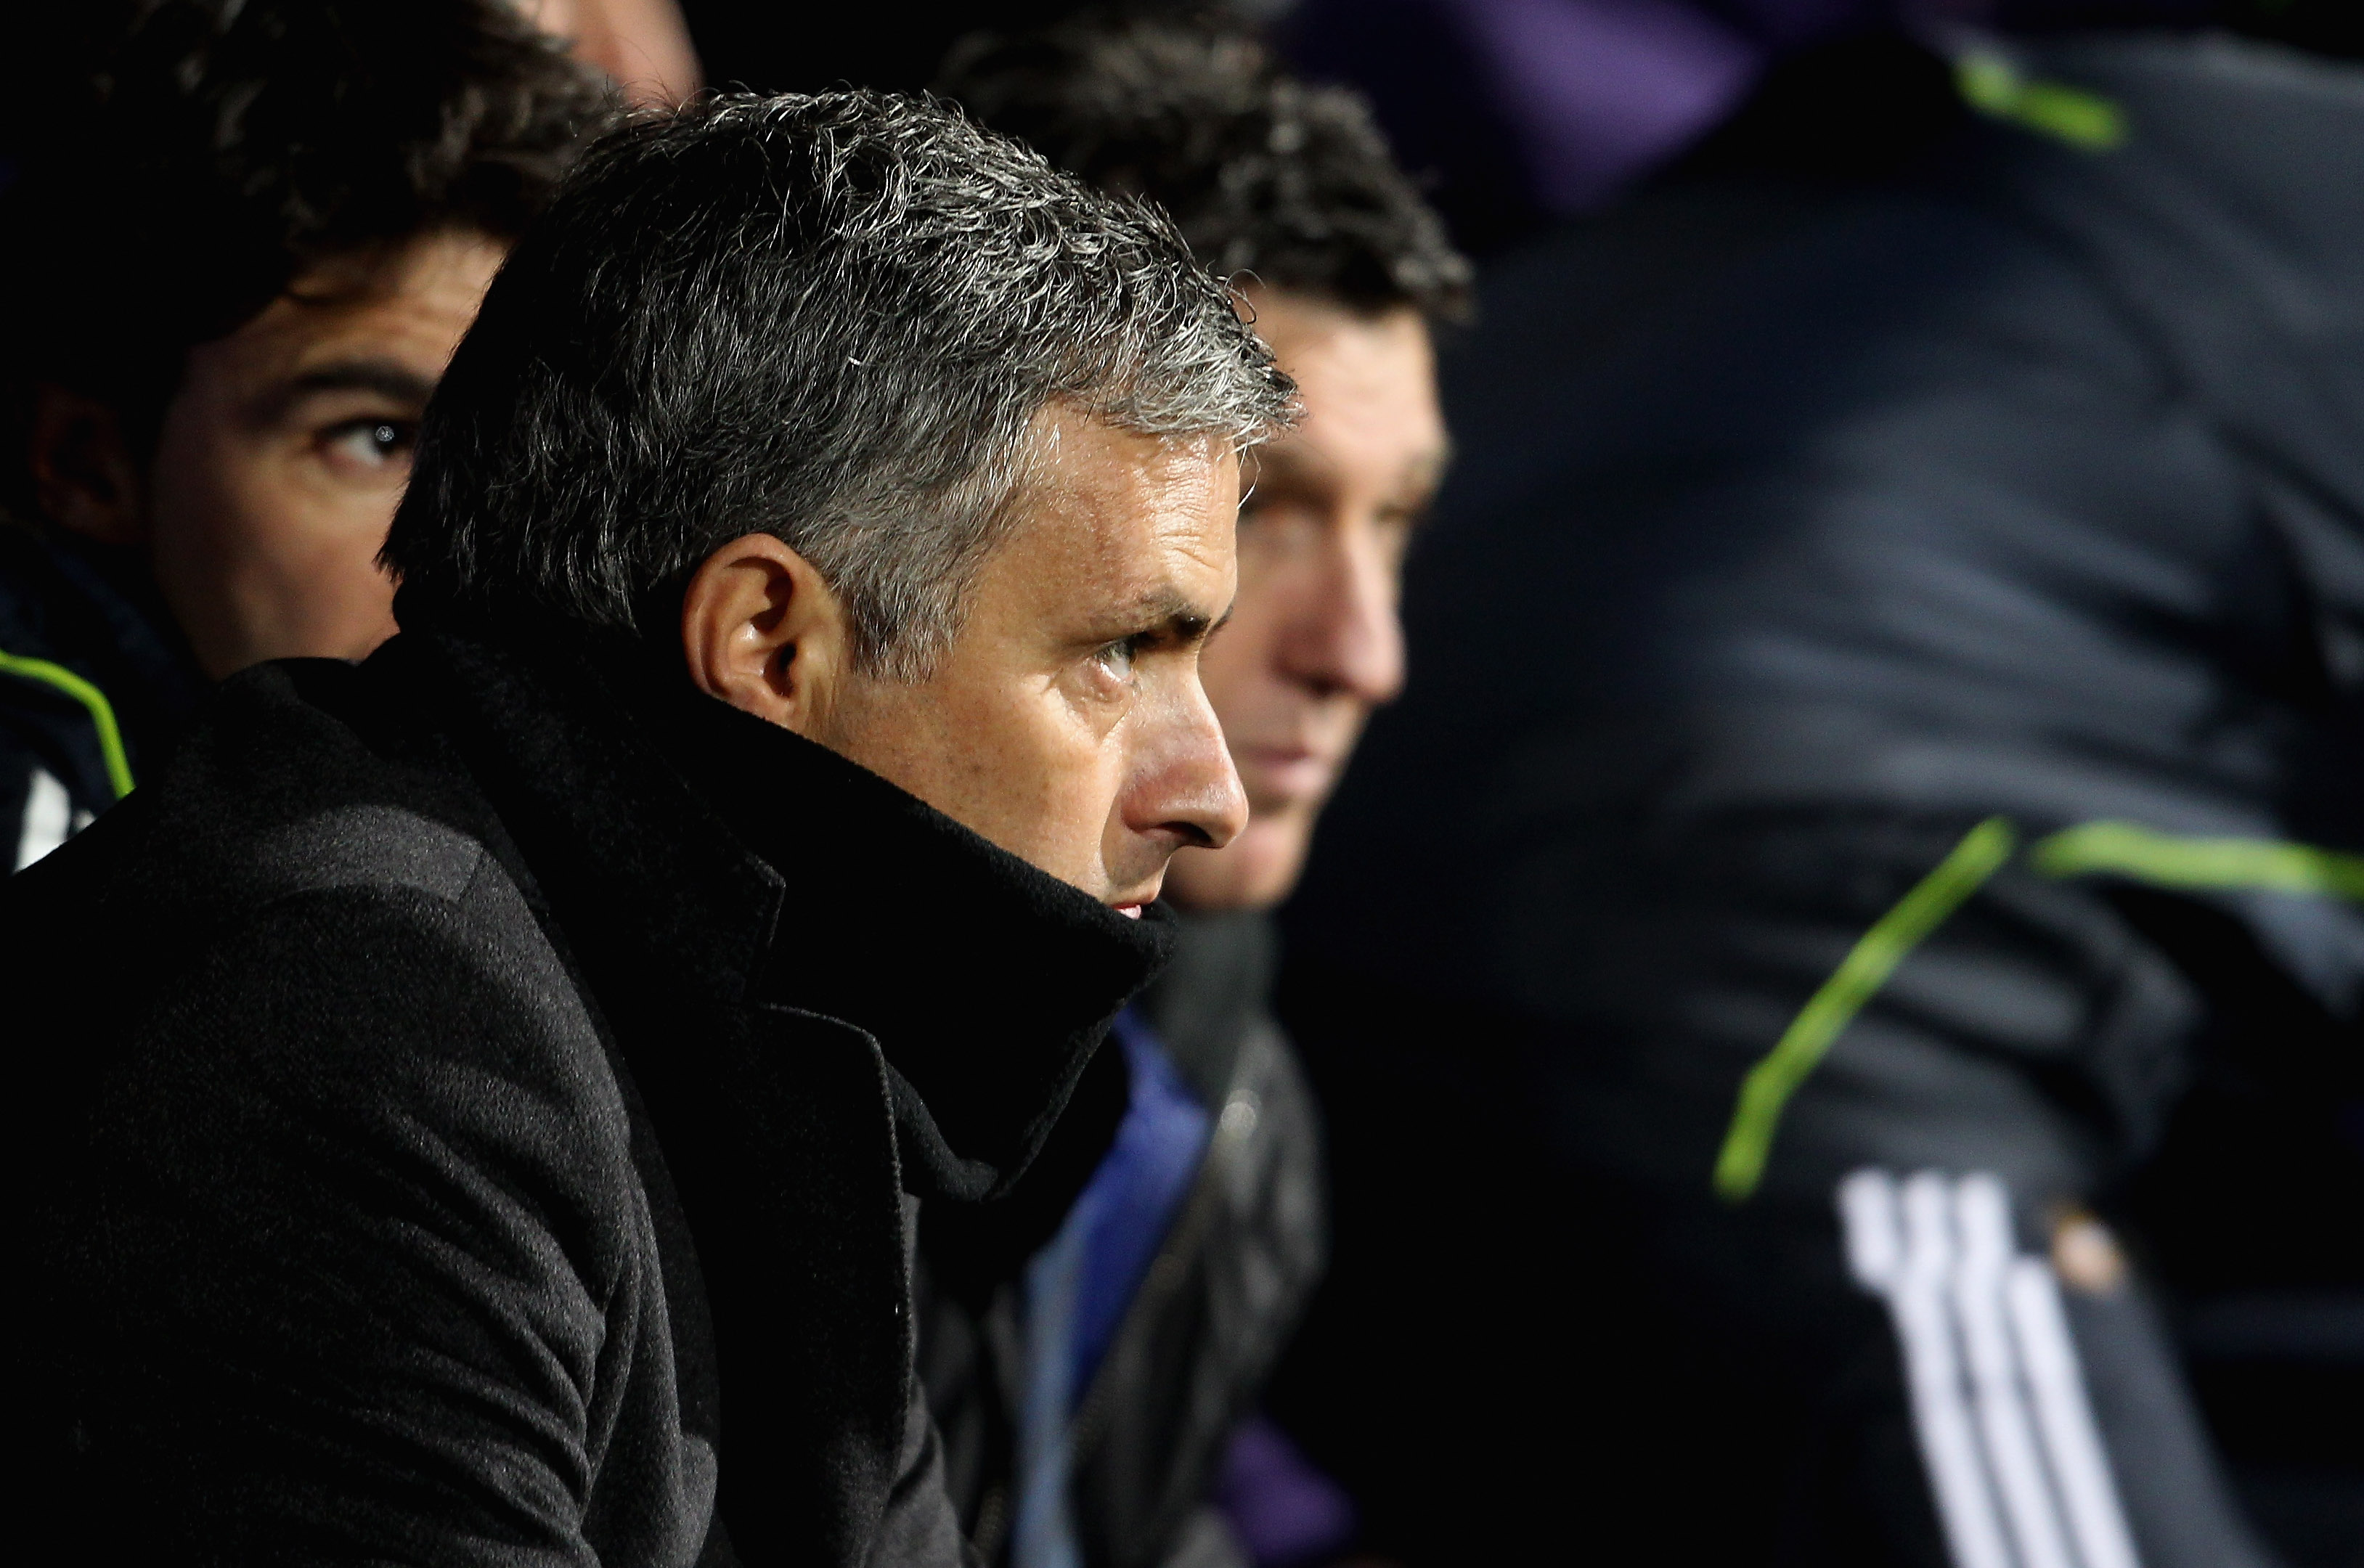 LYON, FRANCE - FEBRUARY 22:  Real Madrid manager Jose Mourinho during the Champions League match between Lyon and Real Madrid at Stade Gerland on February 22, 2011 in Lyon, France.  (Photo by Scott Heavey/Getty Images)